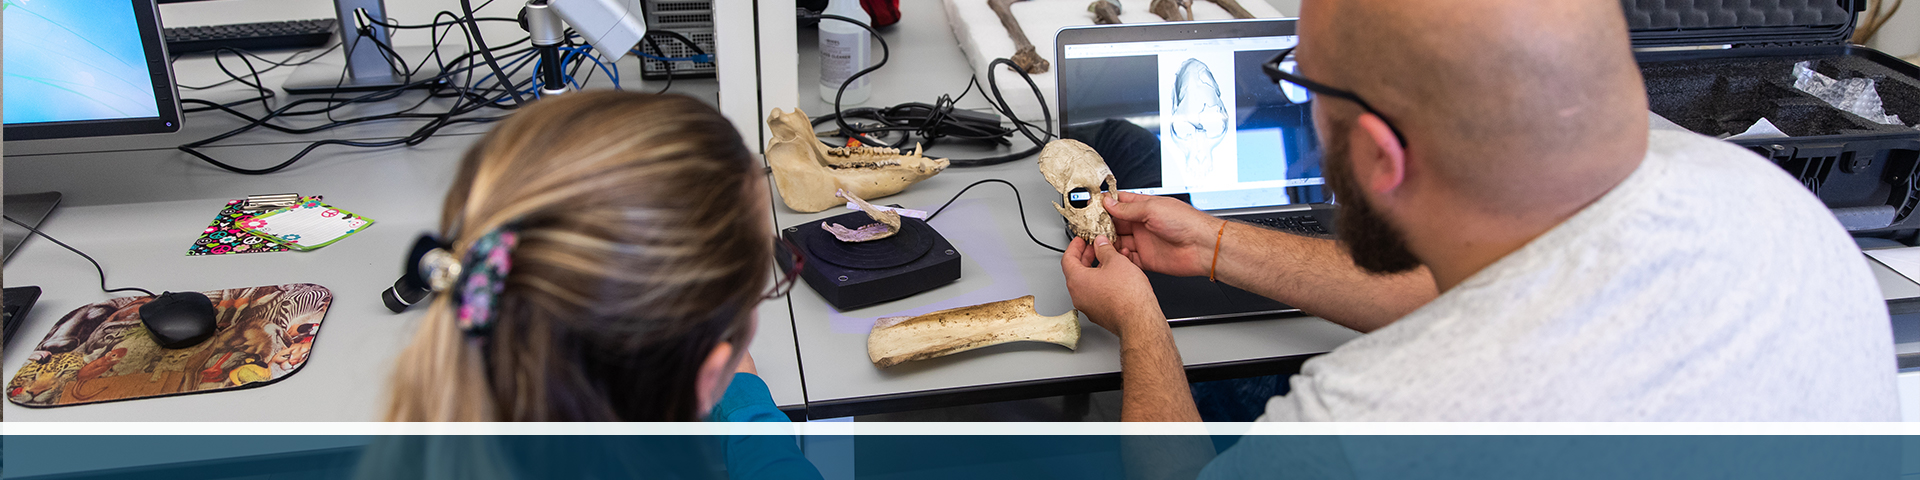 2 graduate students working with bone specimens in an anthropology lab